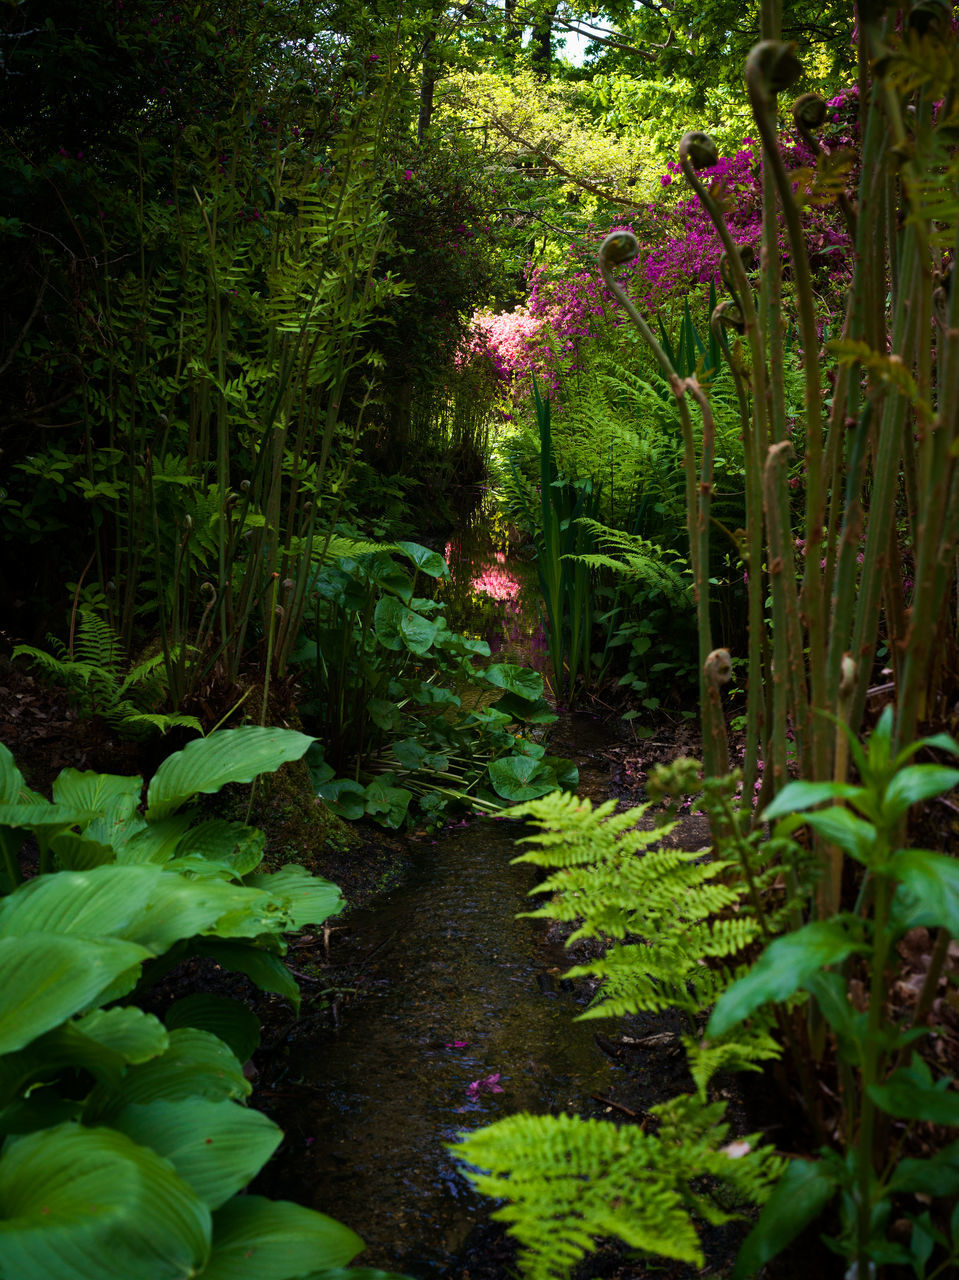 growth, nature, tranquility, plant, beauty in nature, foliage, outdoors, forest, no people, scenics, botanical garden, flower, day, tree